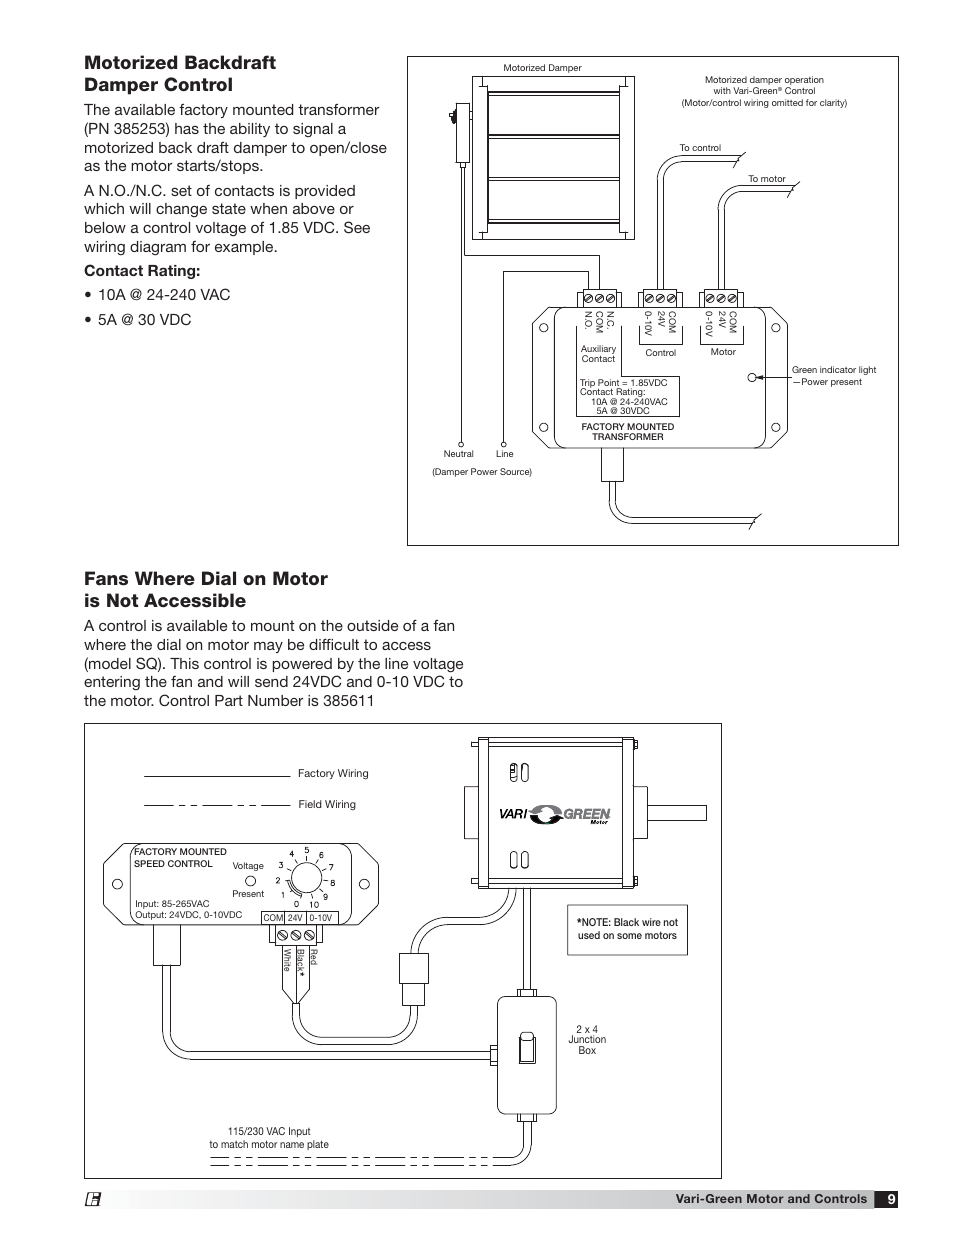 hight resolution of motorized backdraft damper control fans where dial on motor is not accessible greenheck vari green motor iom 473681 user manual page 9 12